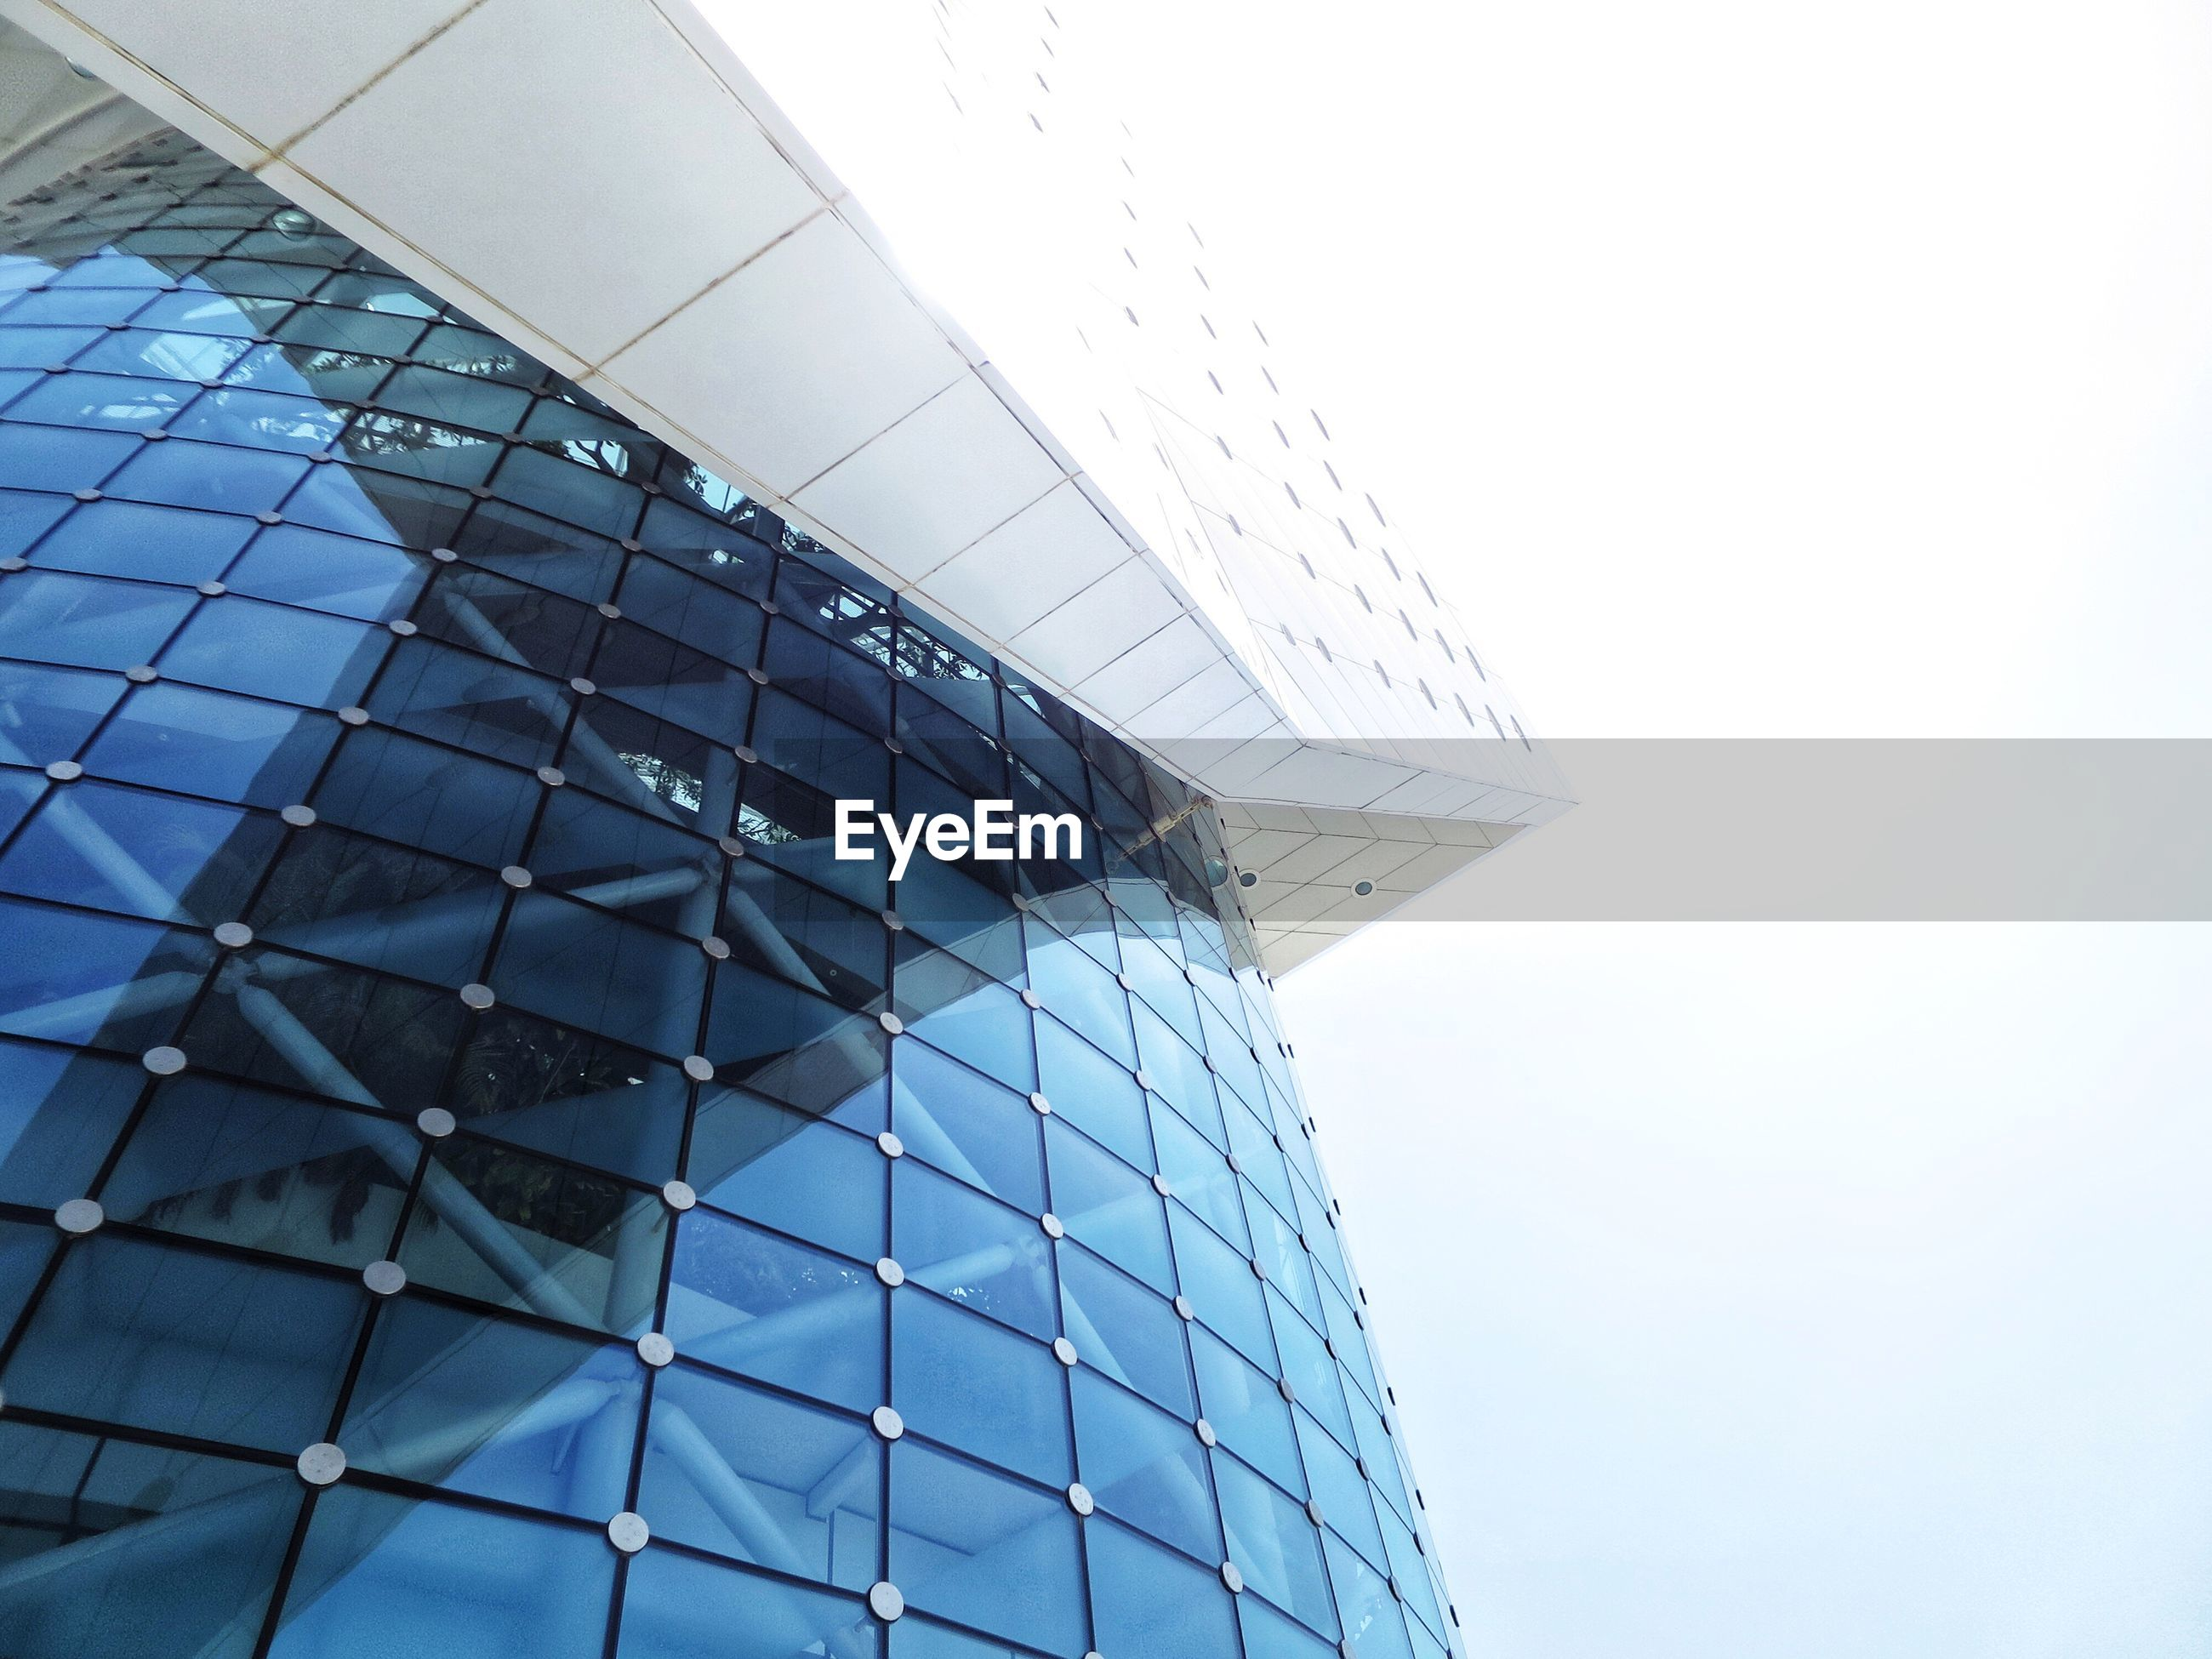 LOW ANGLE VIEW OF MODERN OFFICE BUILDING AGAINST CLEAR SKY